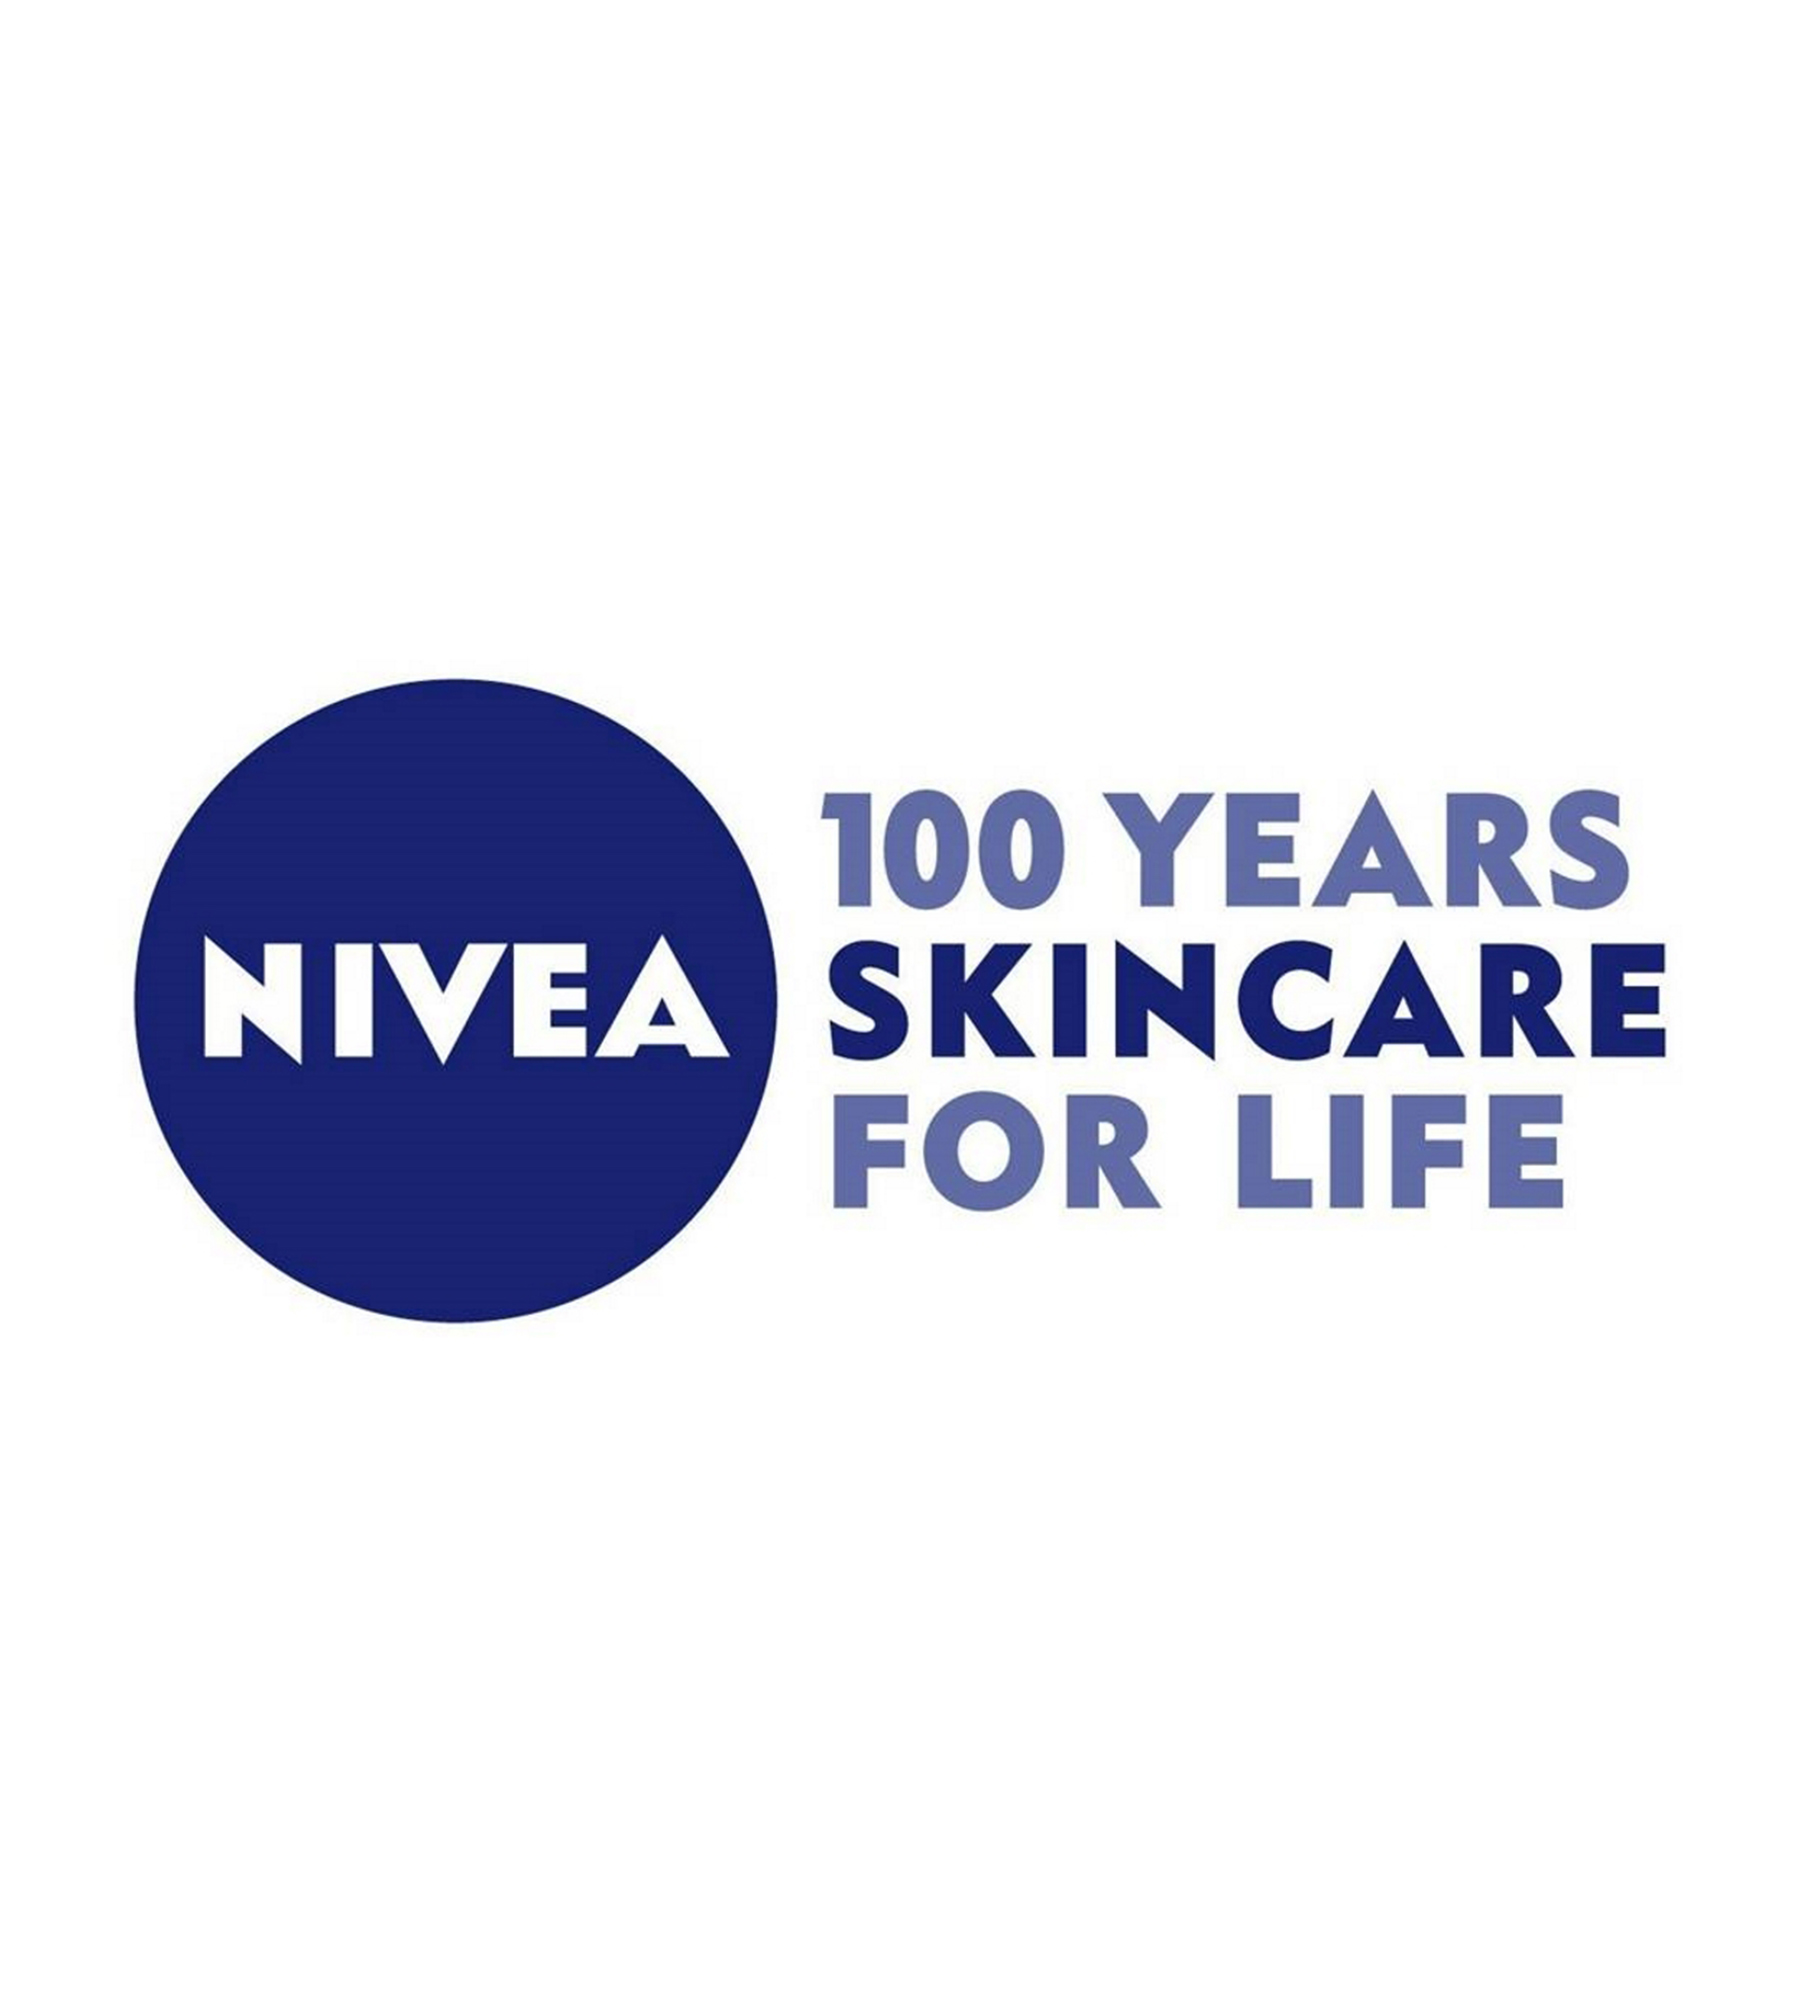 Nivea beauty vision